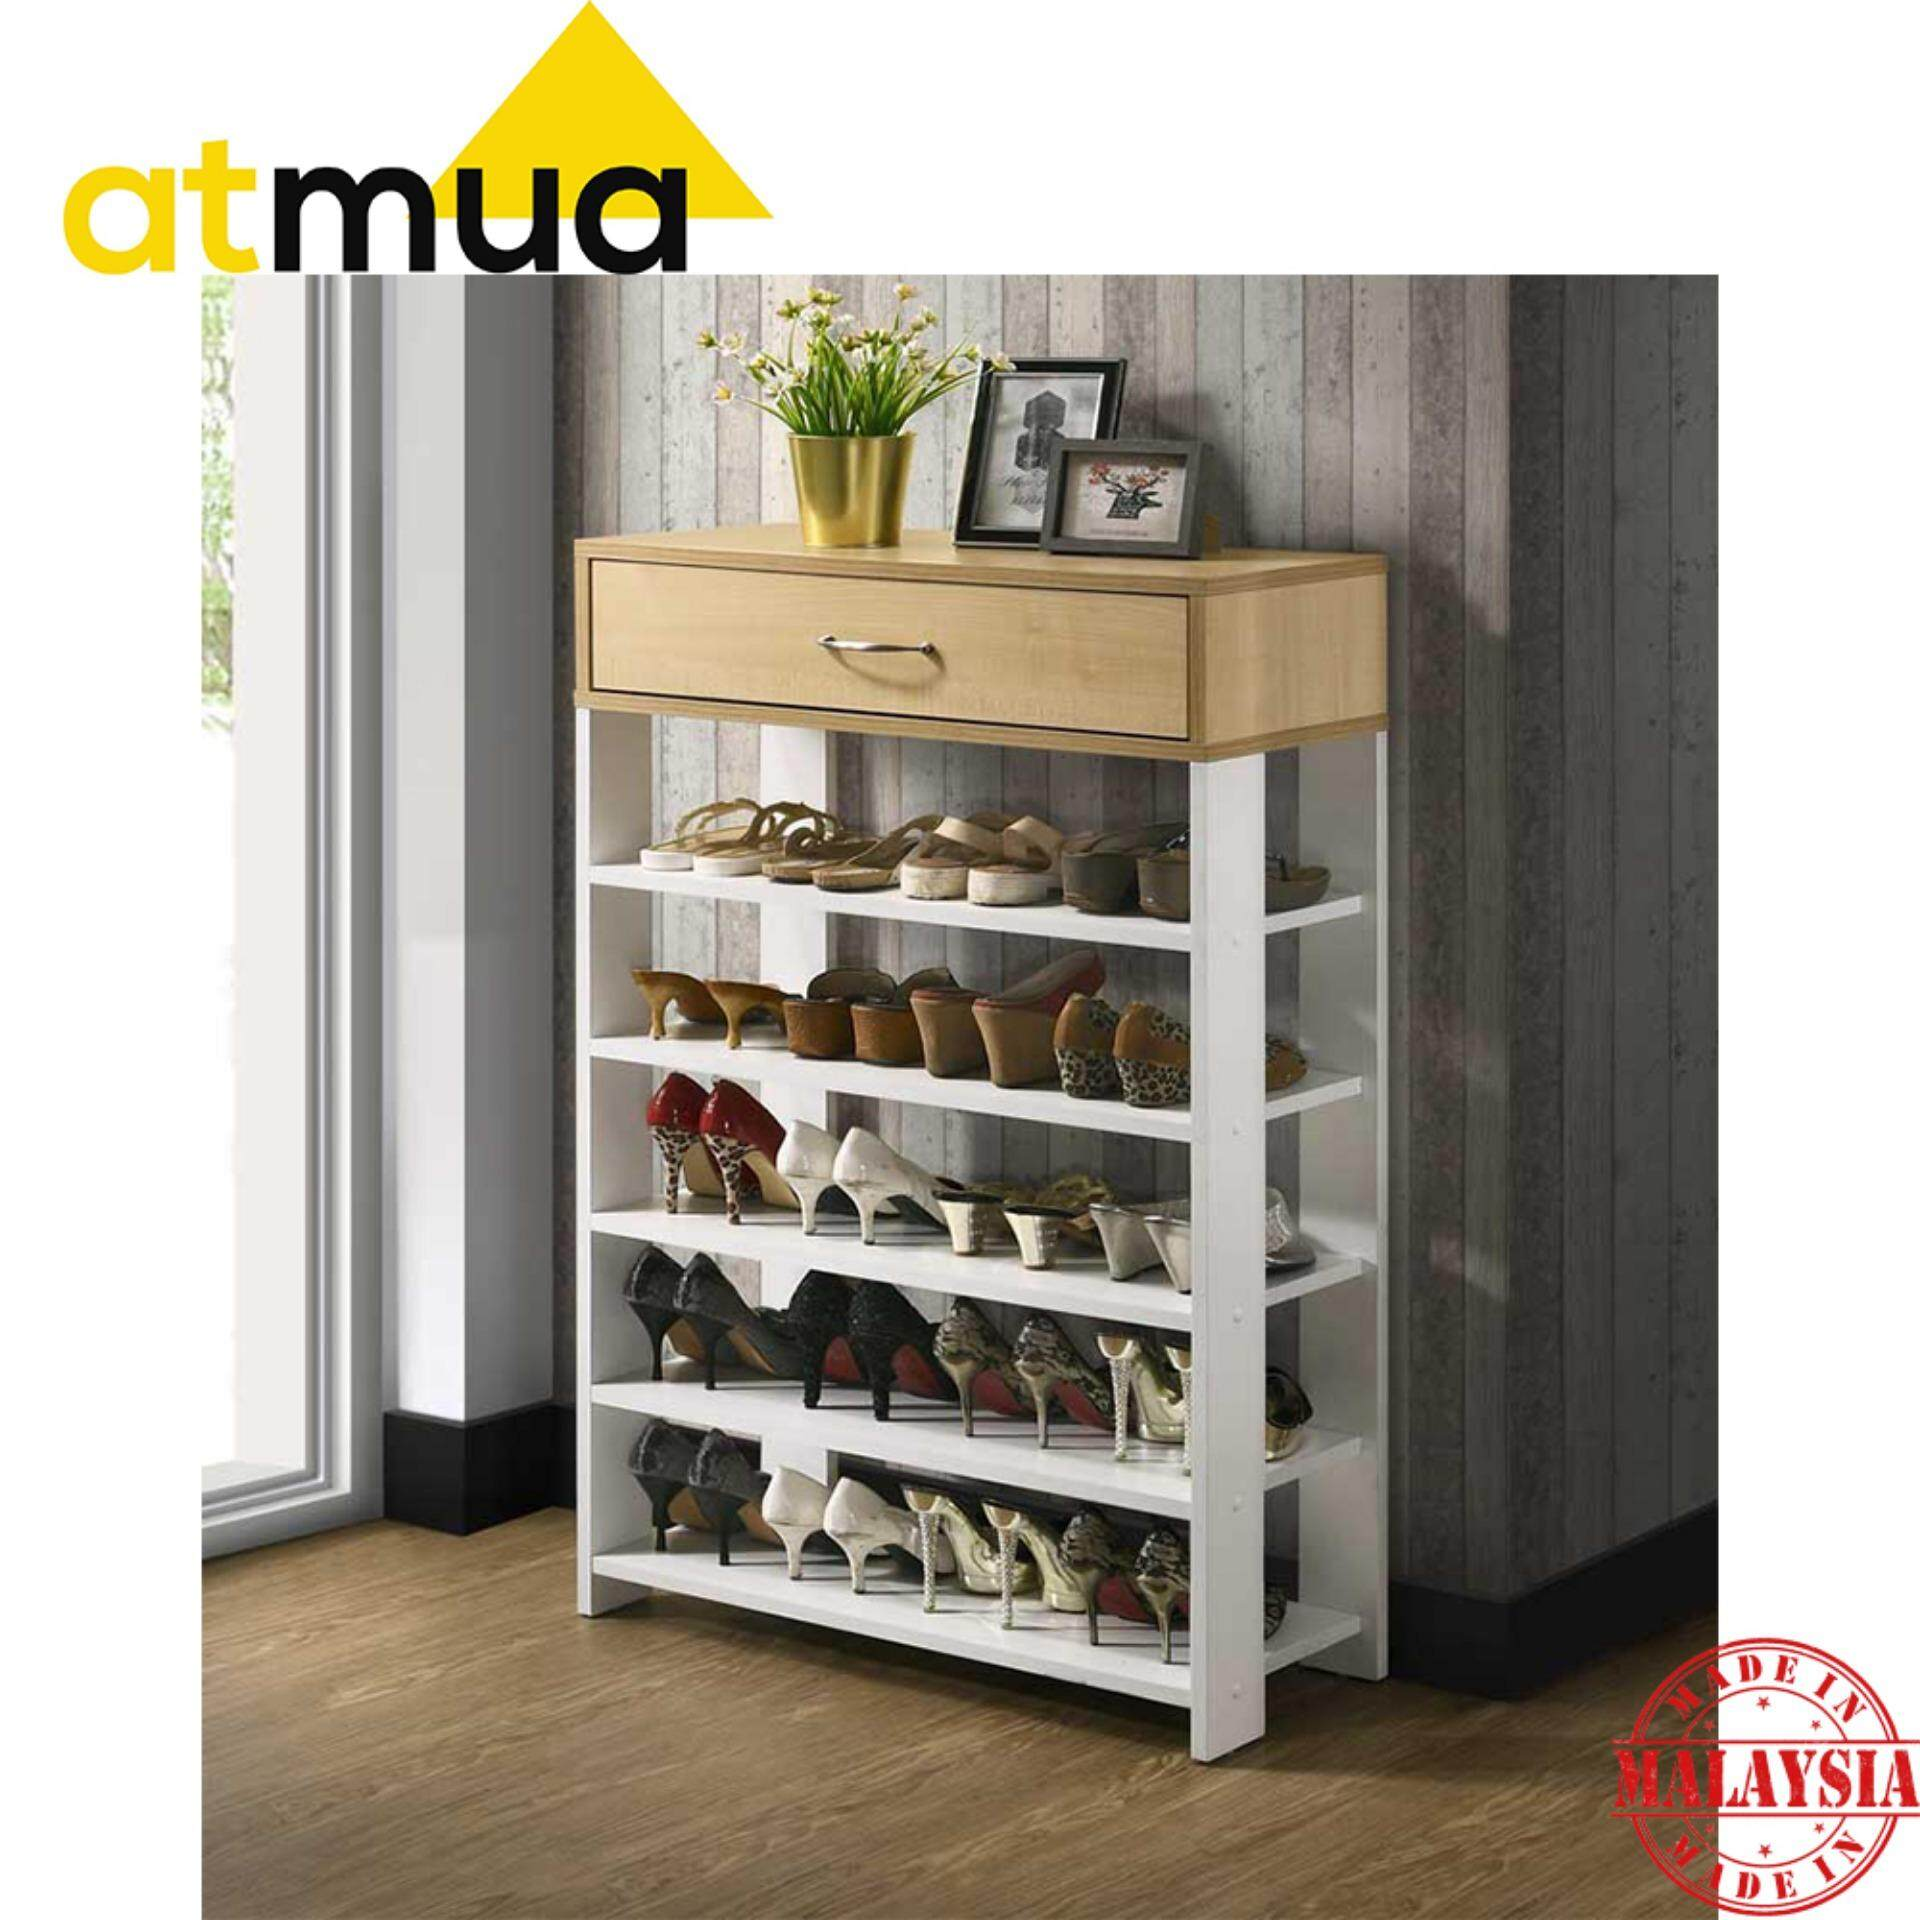 Atmua Hamton Indoor Shoe Rack 5 Rack with 1 Storage (Simple Design) [Full Melamine Board]